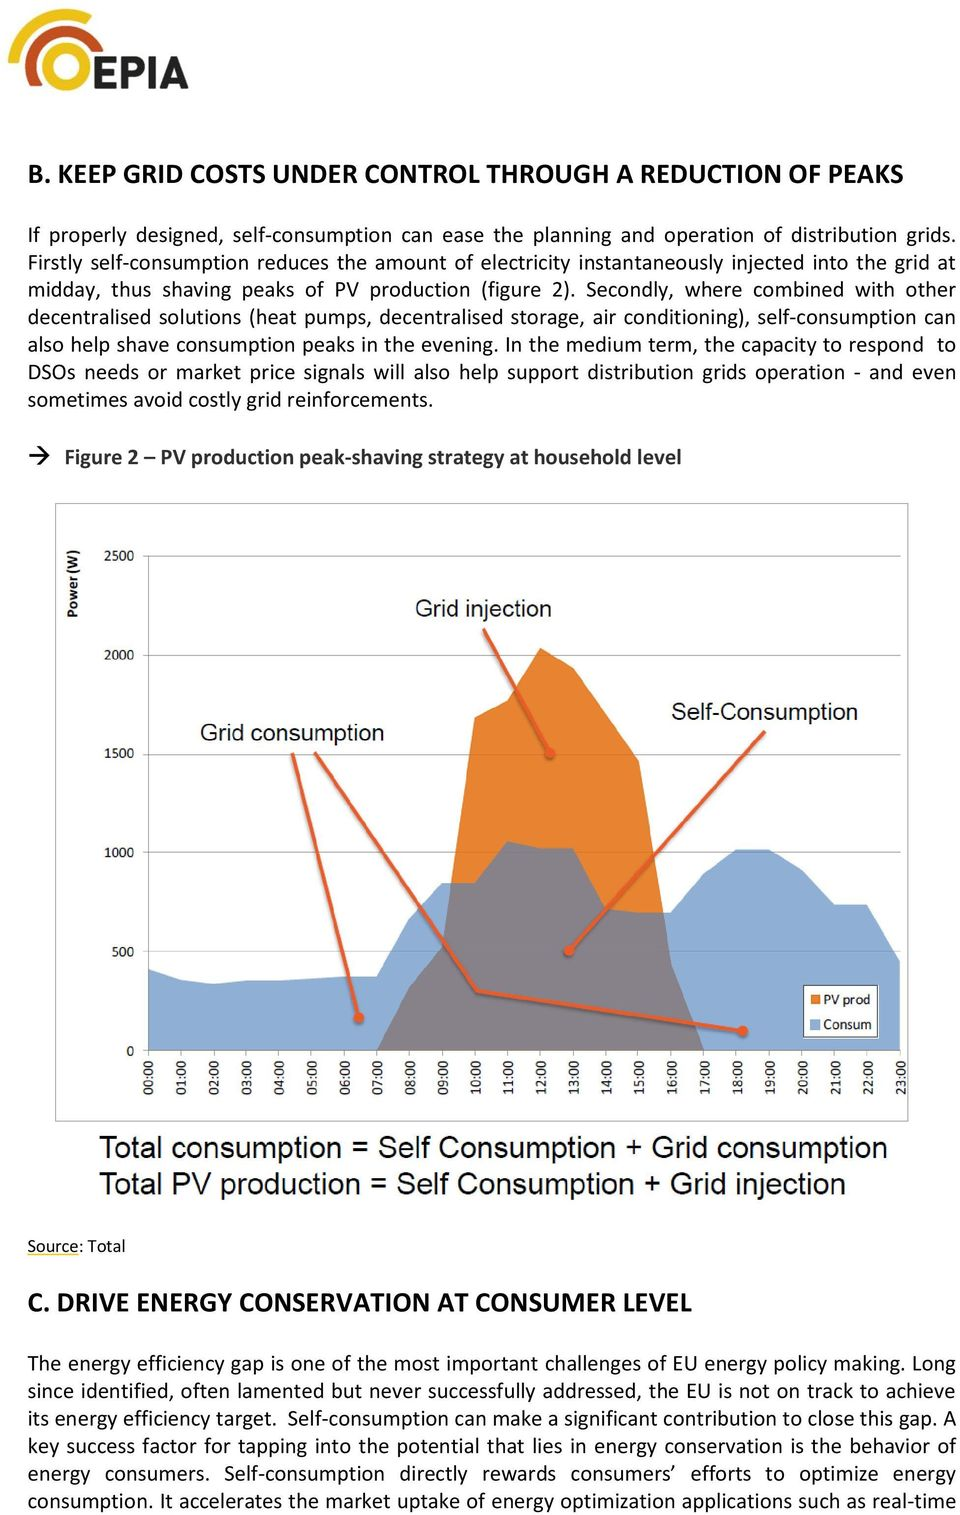 Secondly, where combined with other decentralised solutions (heat pumps, decentralised storage, air conditioning), self-consumption can also help shave consumption peaks in the evening.